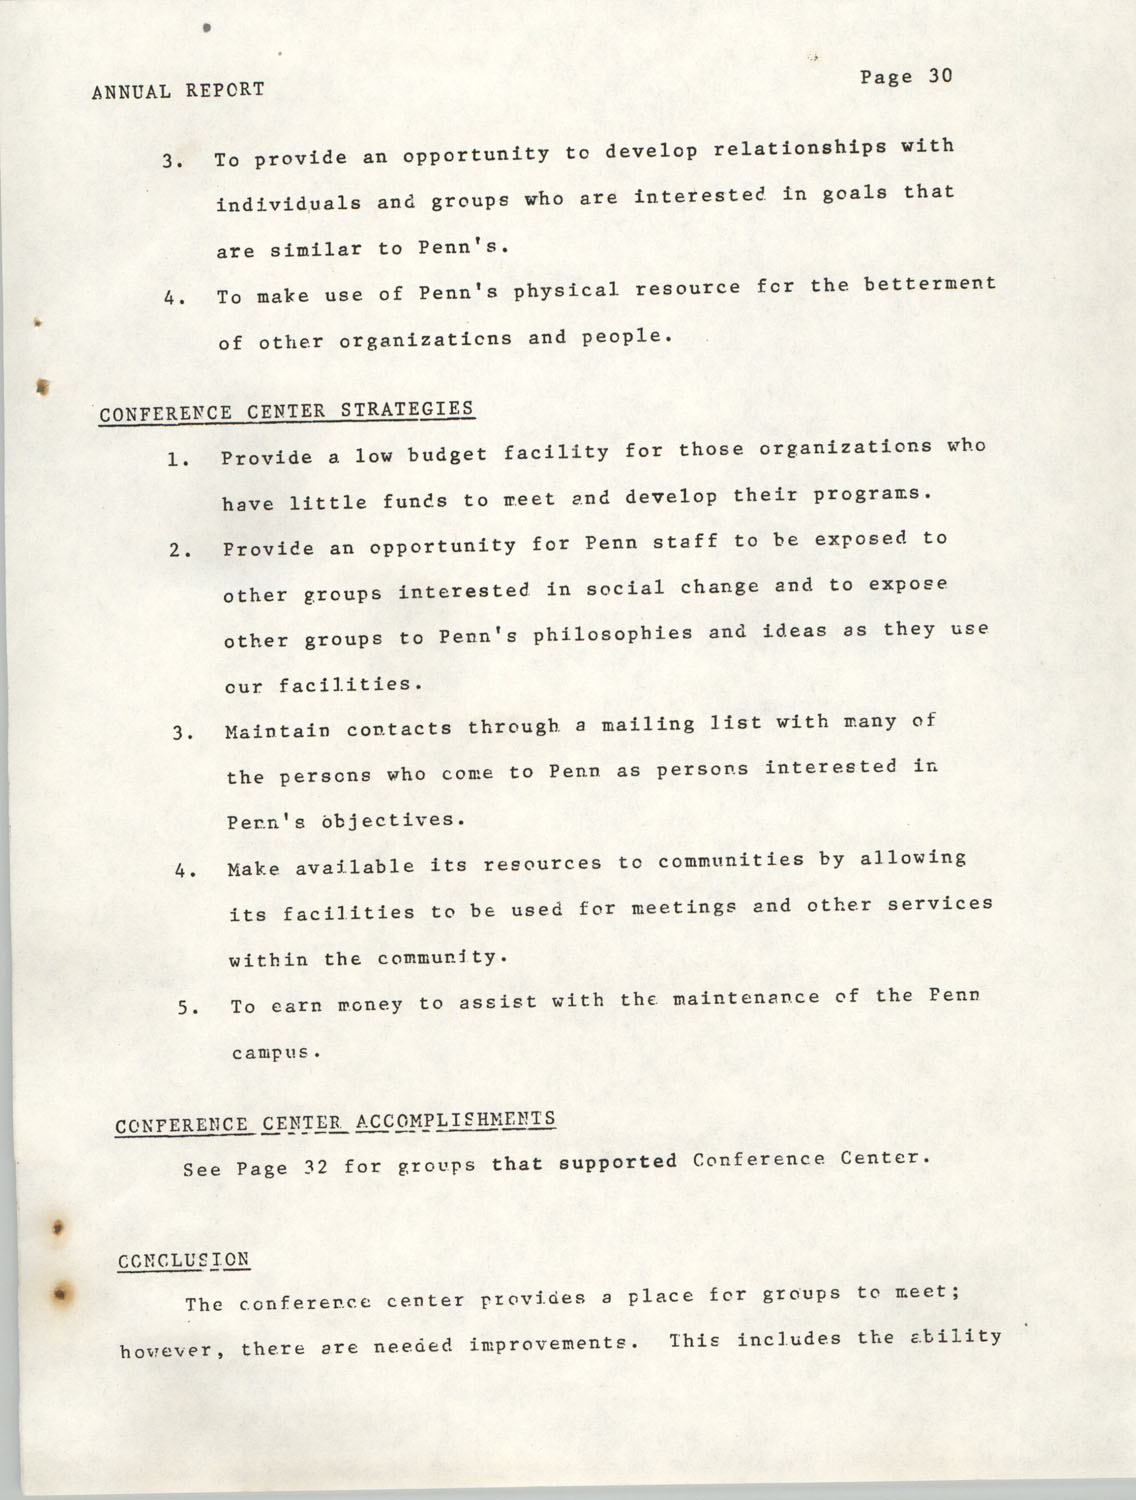 Annual Report, Penn Community Services, 1974, Page 30